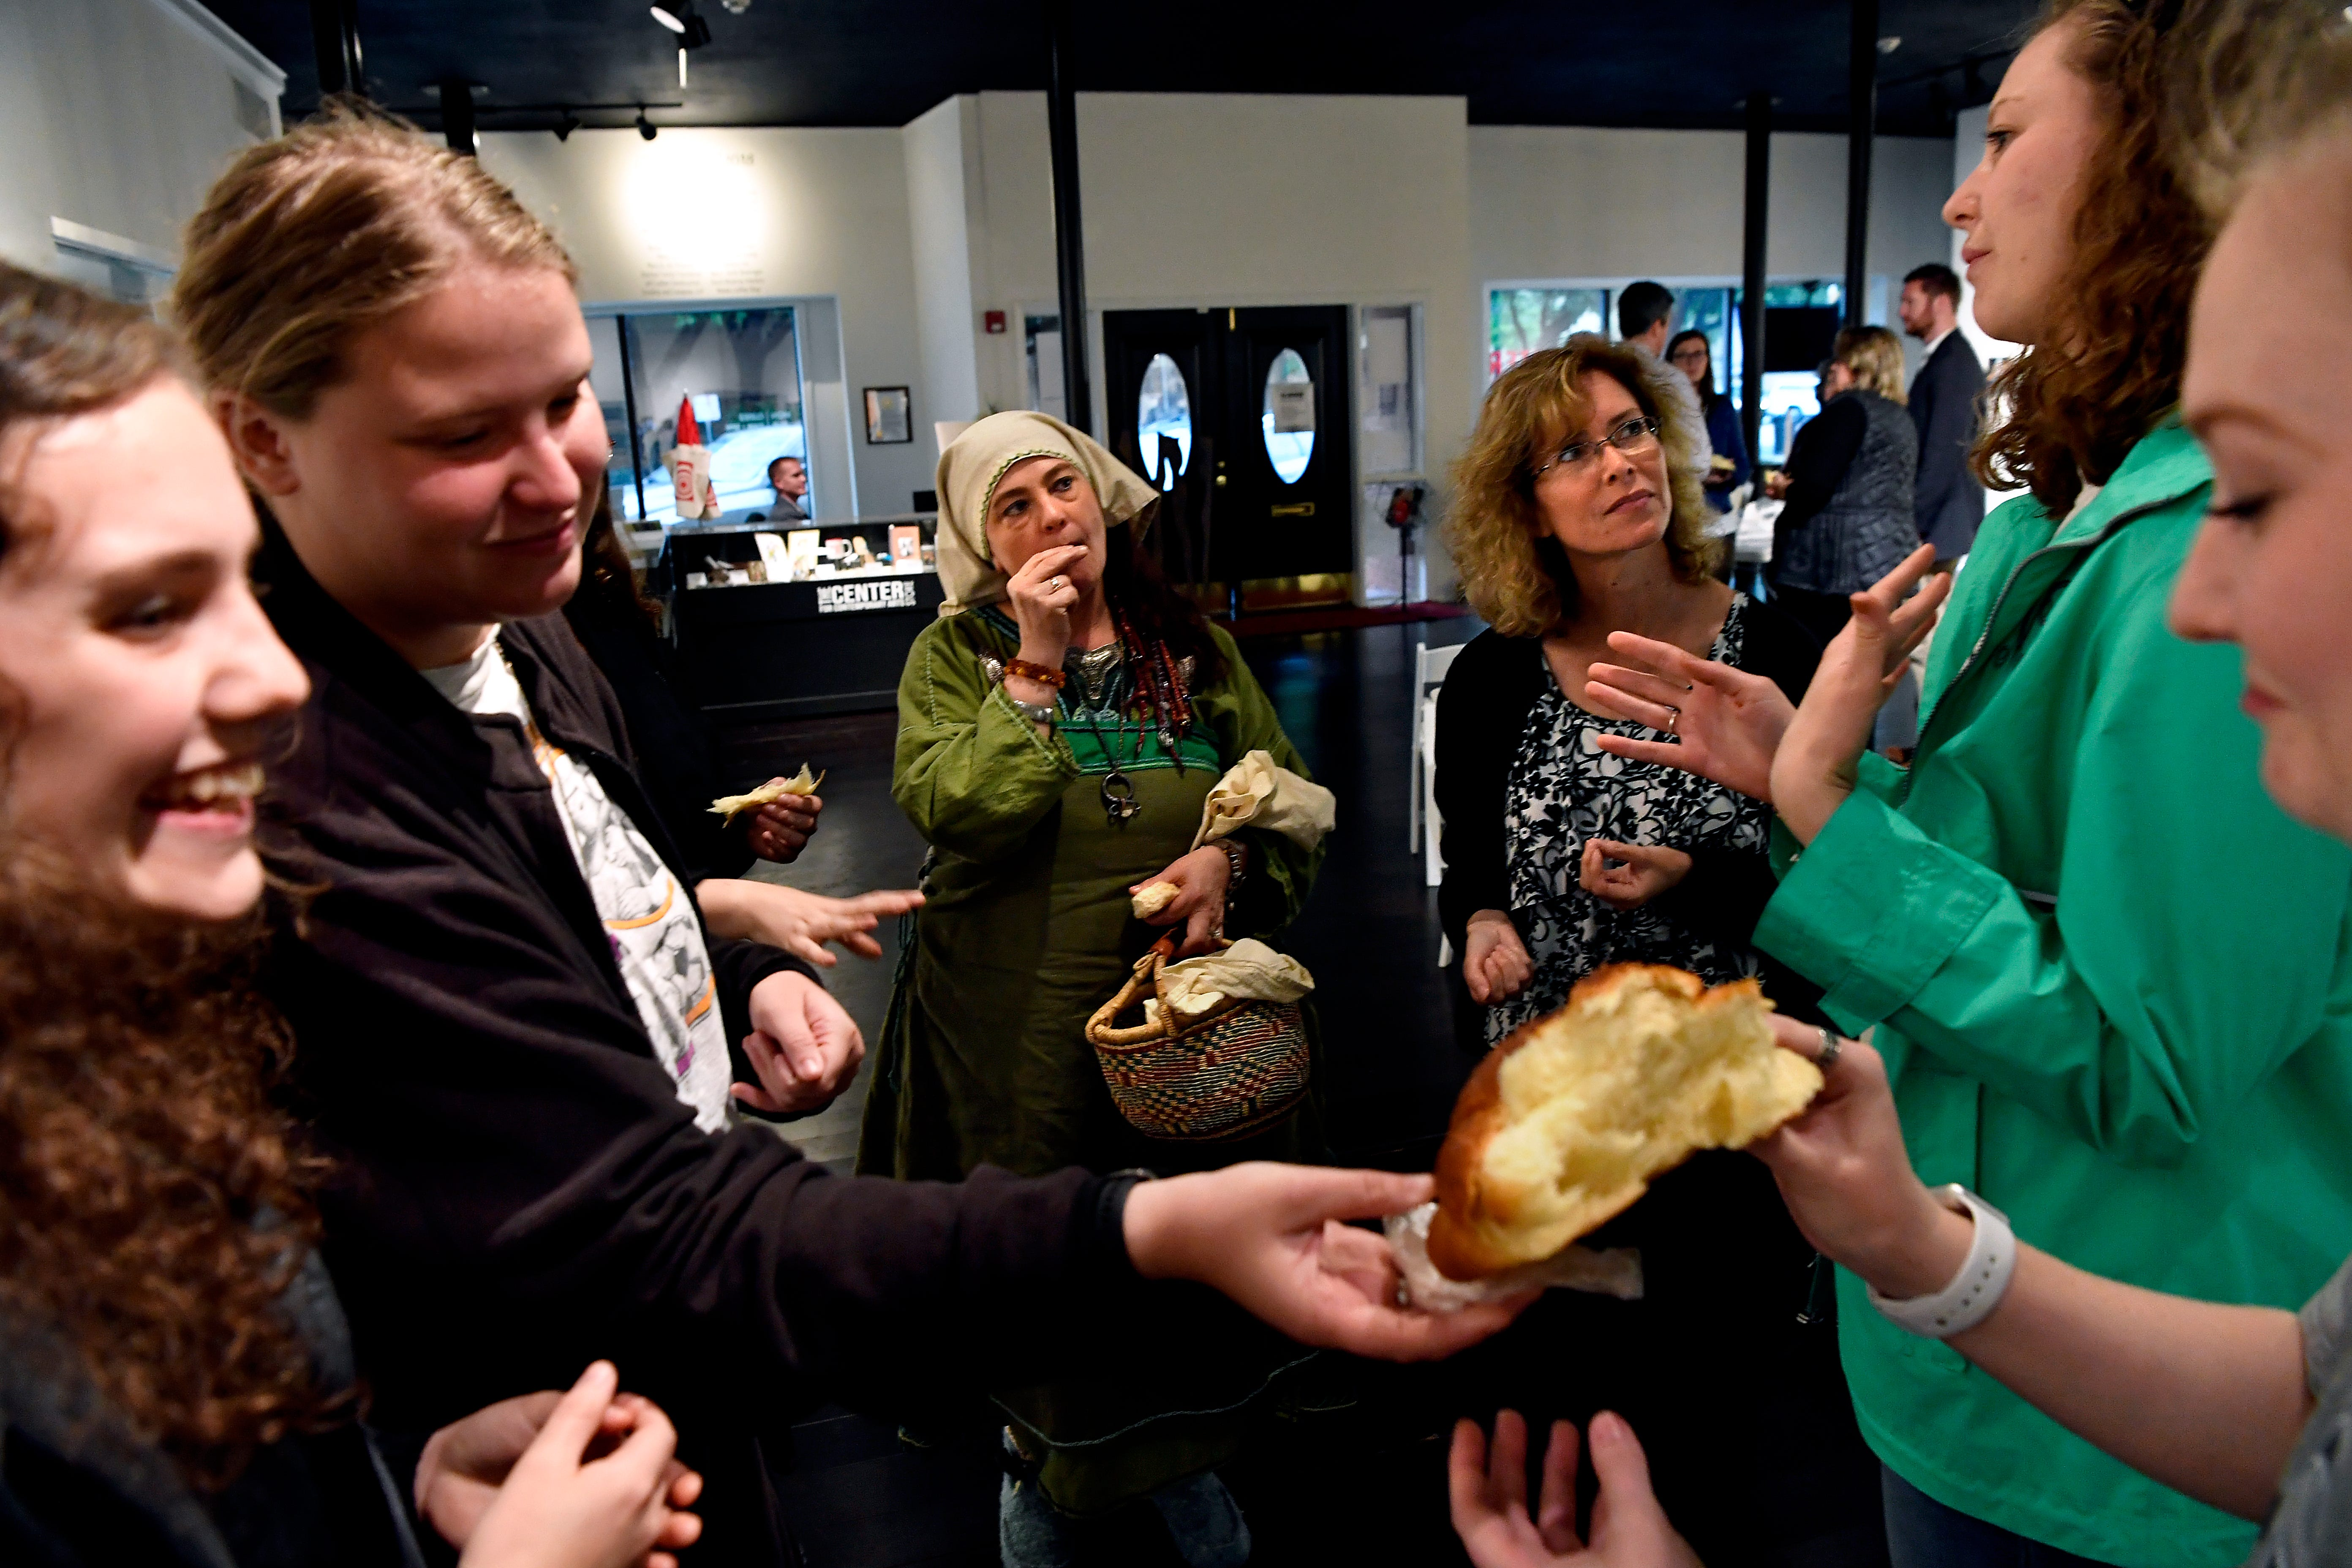 Avalon Olson Zakazakina (center) a norse pagan, and Angela Nicolini listen to Madison Boboltz as Caitlin Dunnells passes bread to Elizabeth Pullman on Thursday at the Center for Contemporary Arts. Brookley Baker watches. The gallery was the site for the Abilene Interfaith Council's observance of the National Day of Prayer, which concluded with differing believers sharing bread.